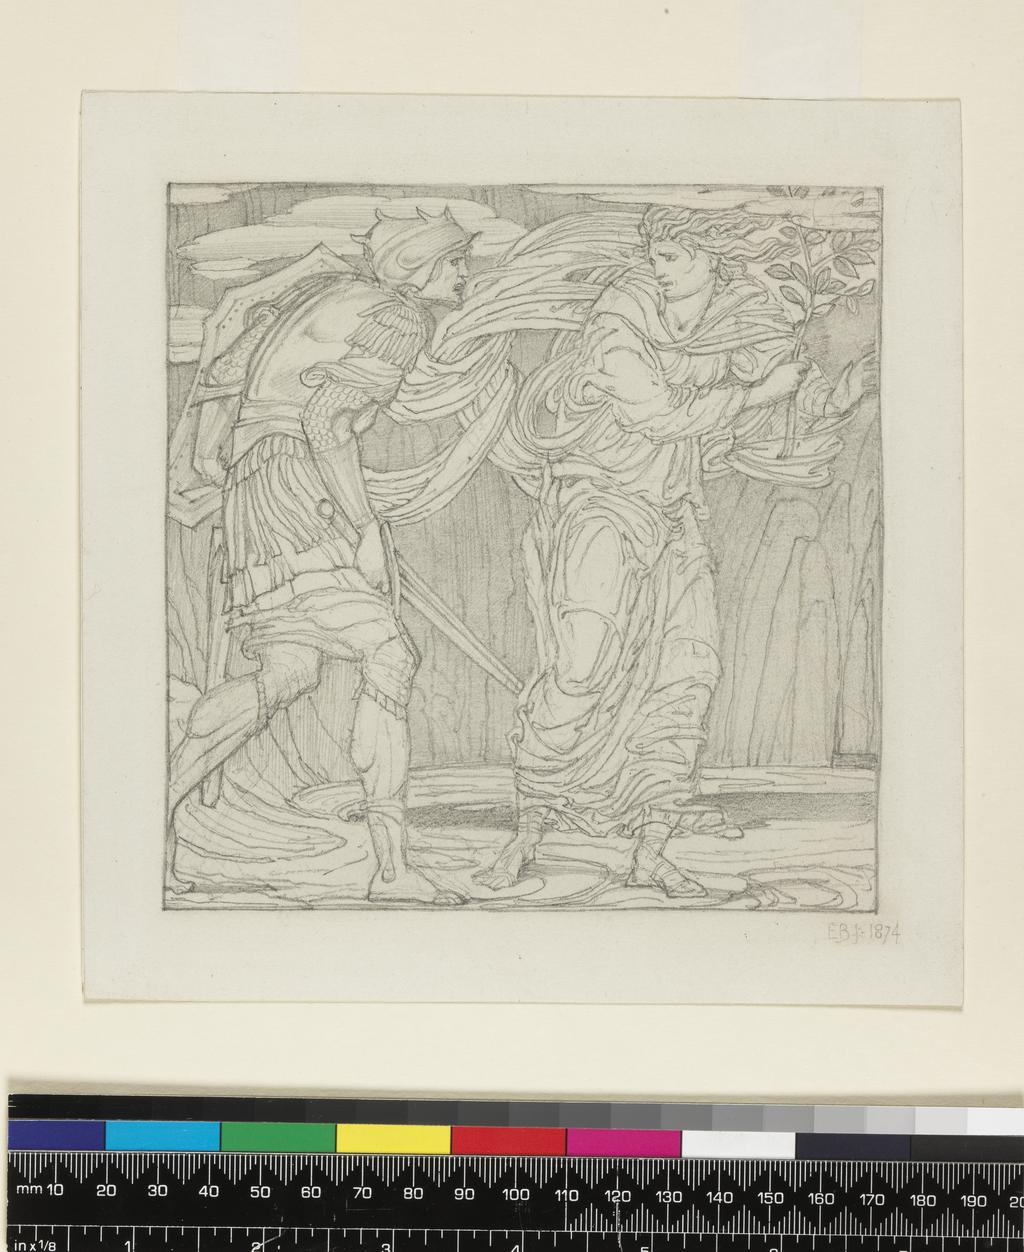 An image of Aeneas and the Sibyl in the Underworld. Burne-Jones, Edward (British, 1833-1898). Graphite within ruled margin on paper, height, sheet size, 178 mm, width, sheet size, 172 mm, height, drawn area, 142 mm, width, drawn area, 140 mm, 1874.